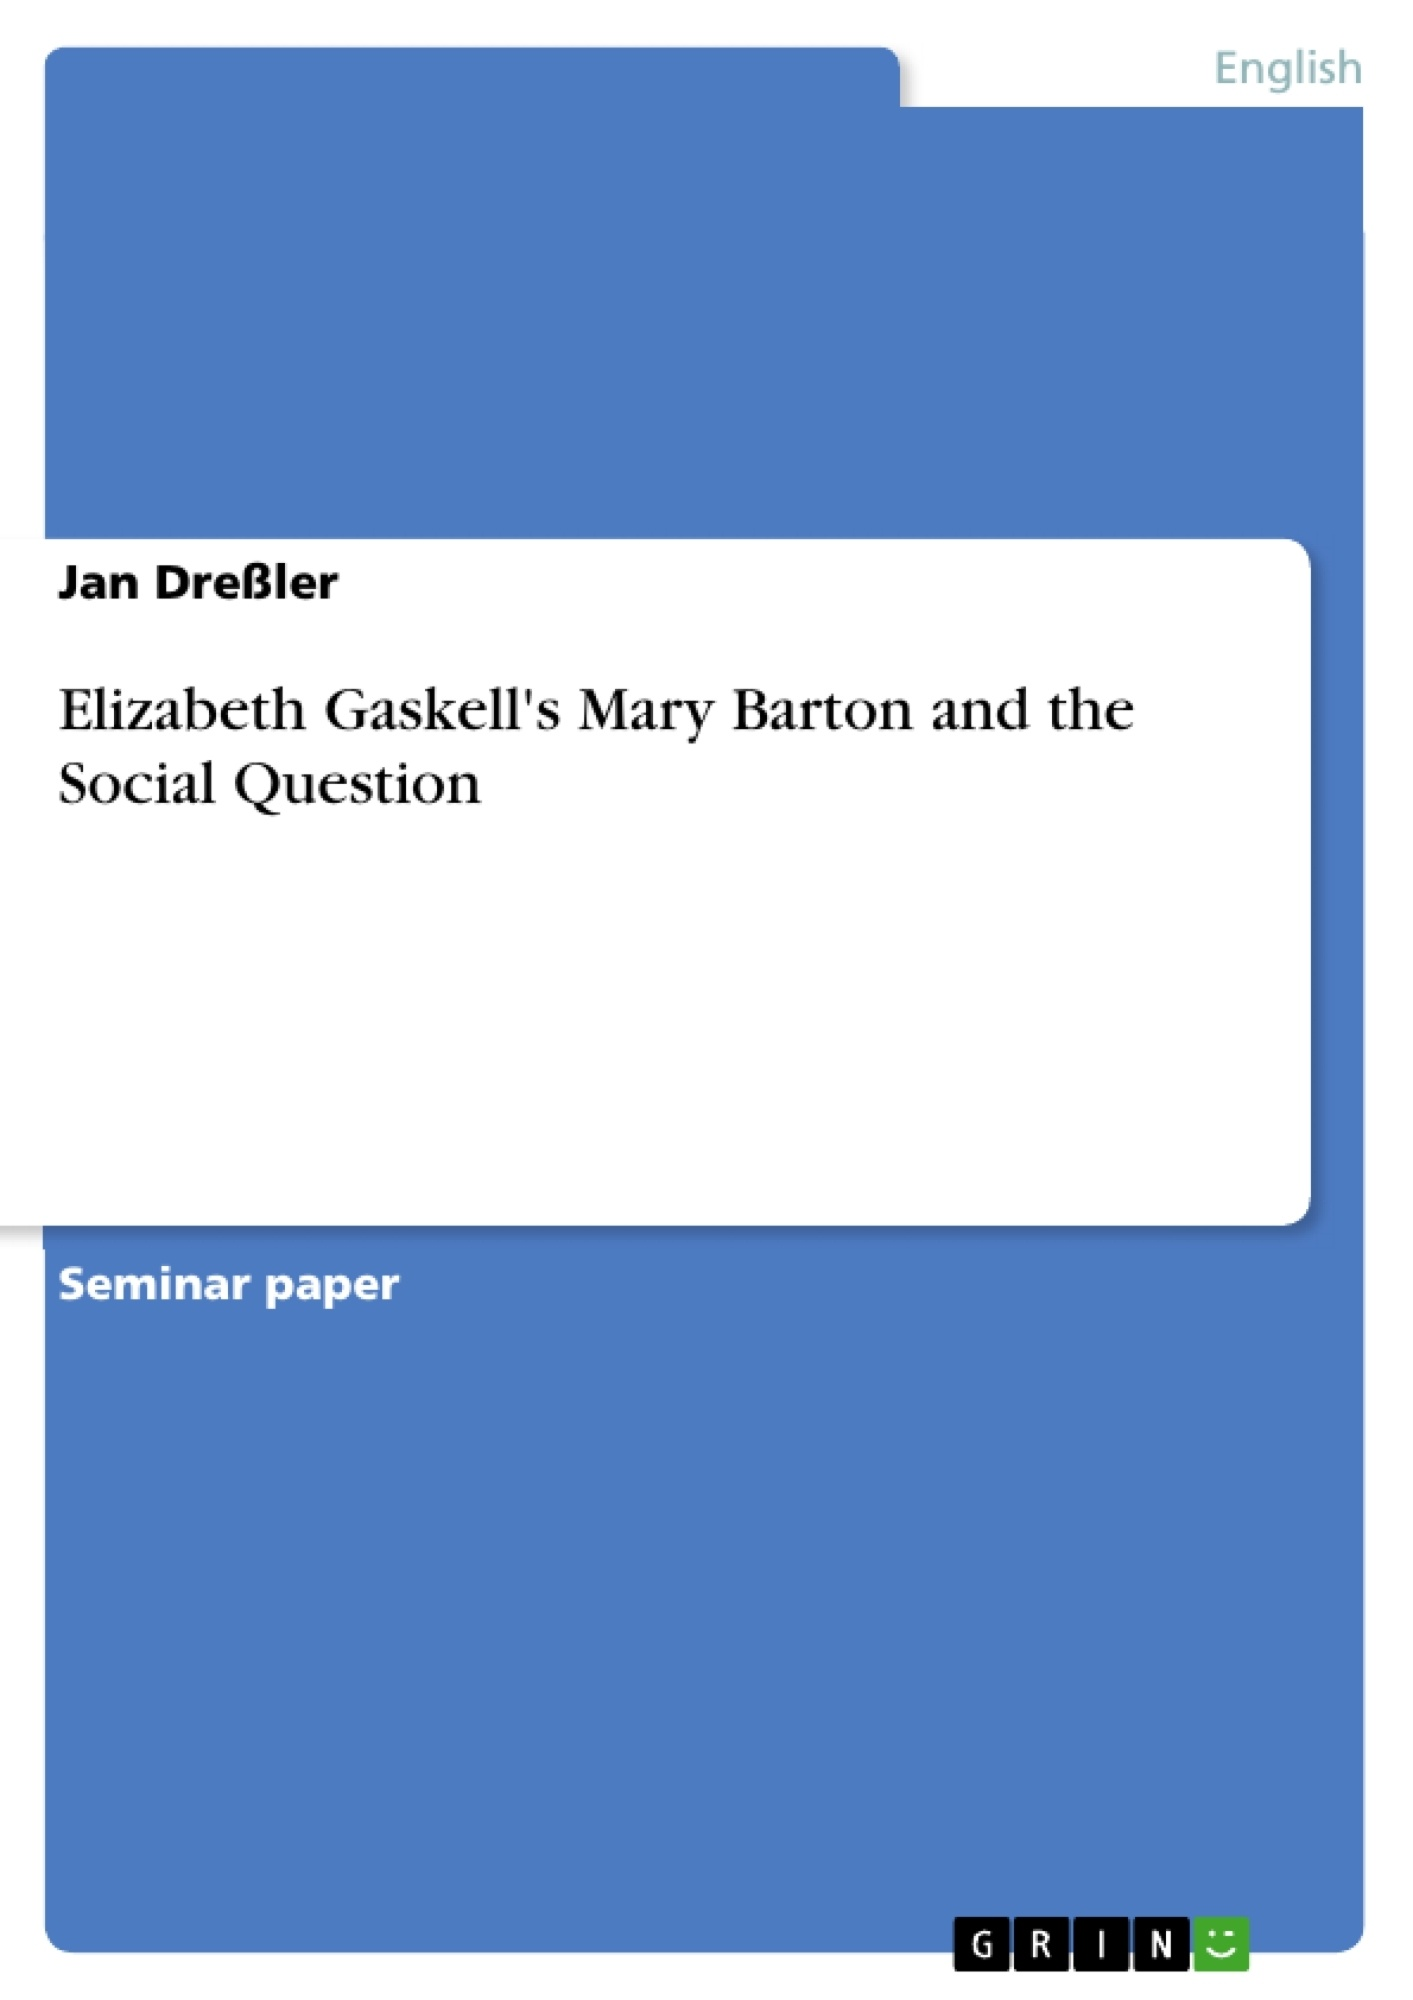 mary shelley thesis essay Biography of mary shelley mary wollstonecraft shelley died in her sleep at age fifty-four essays lesson plan e-text contact us faqs.